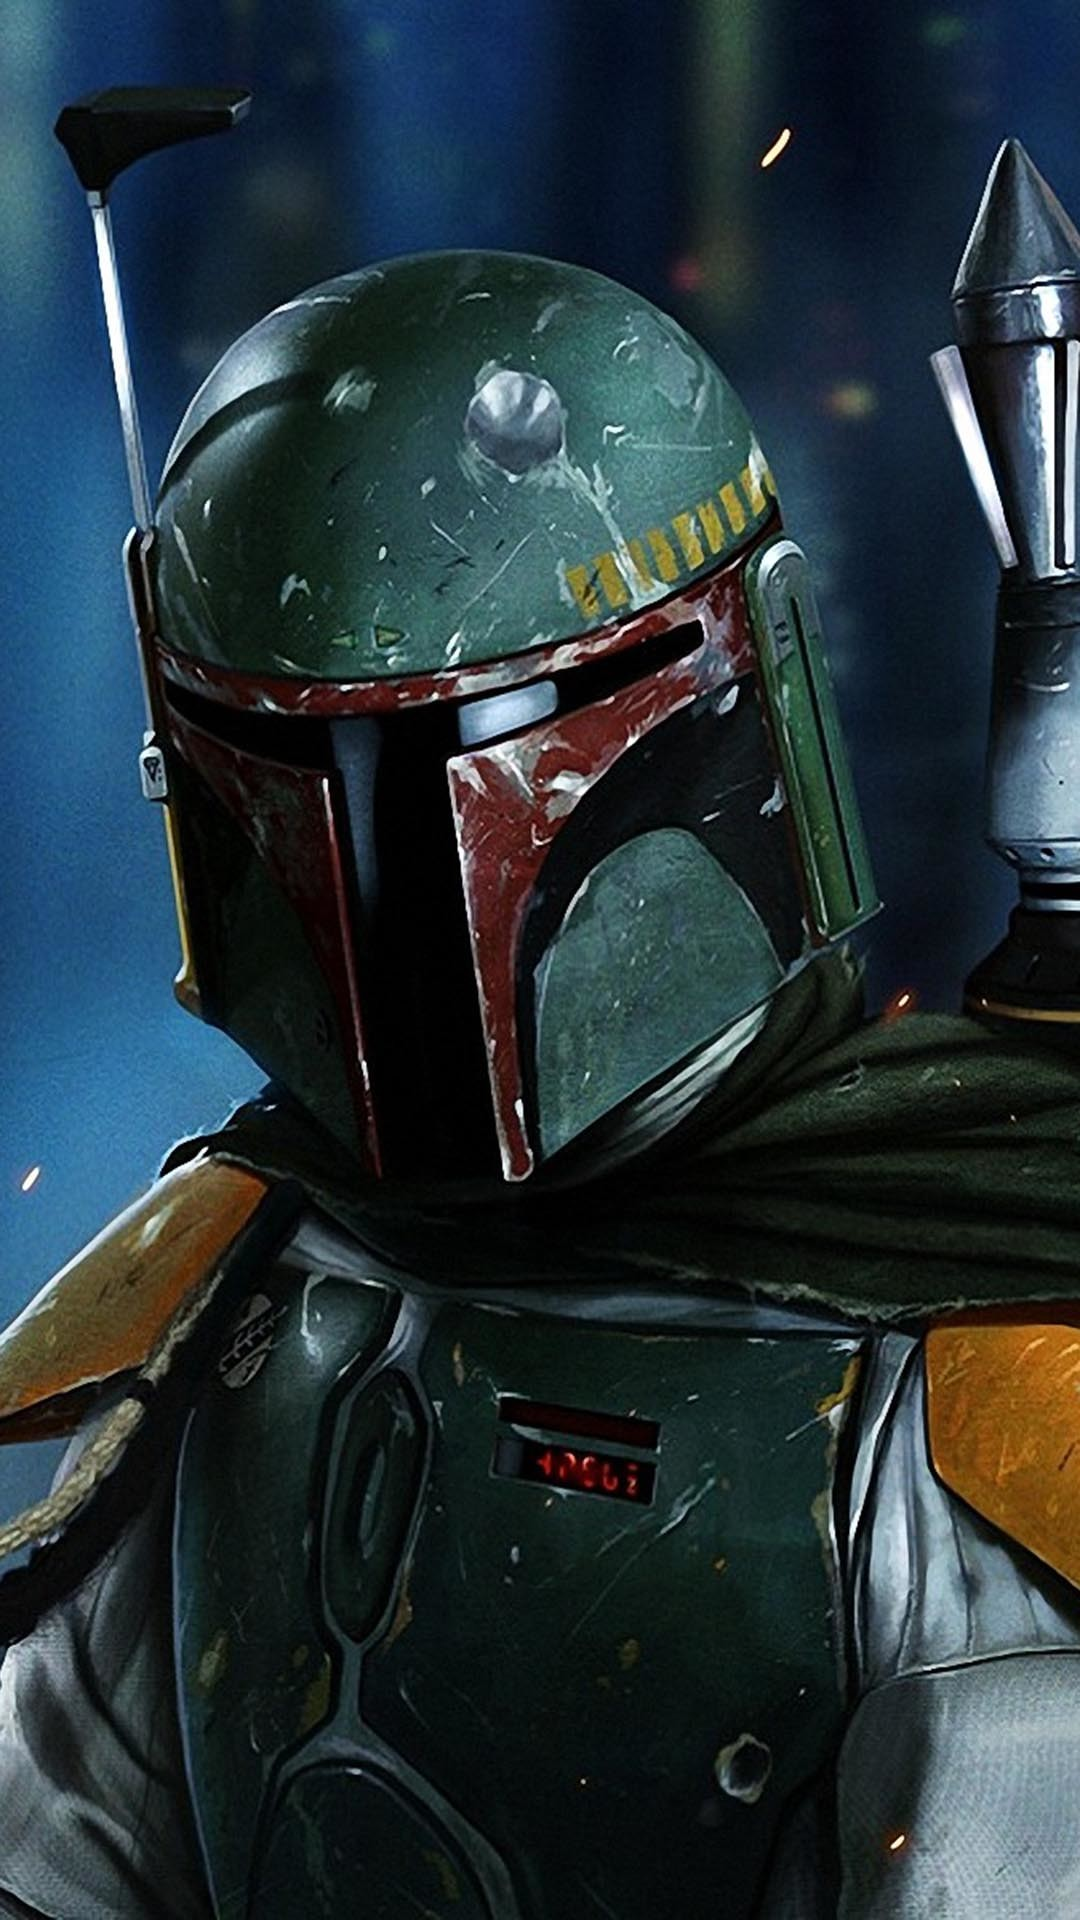 3840x2160 Star Wars Wallpaper Hd Boba Fett